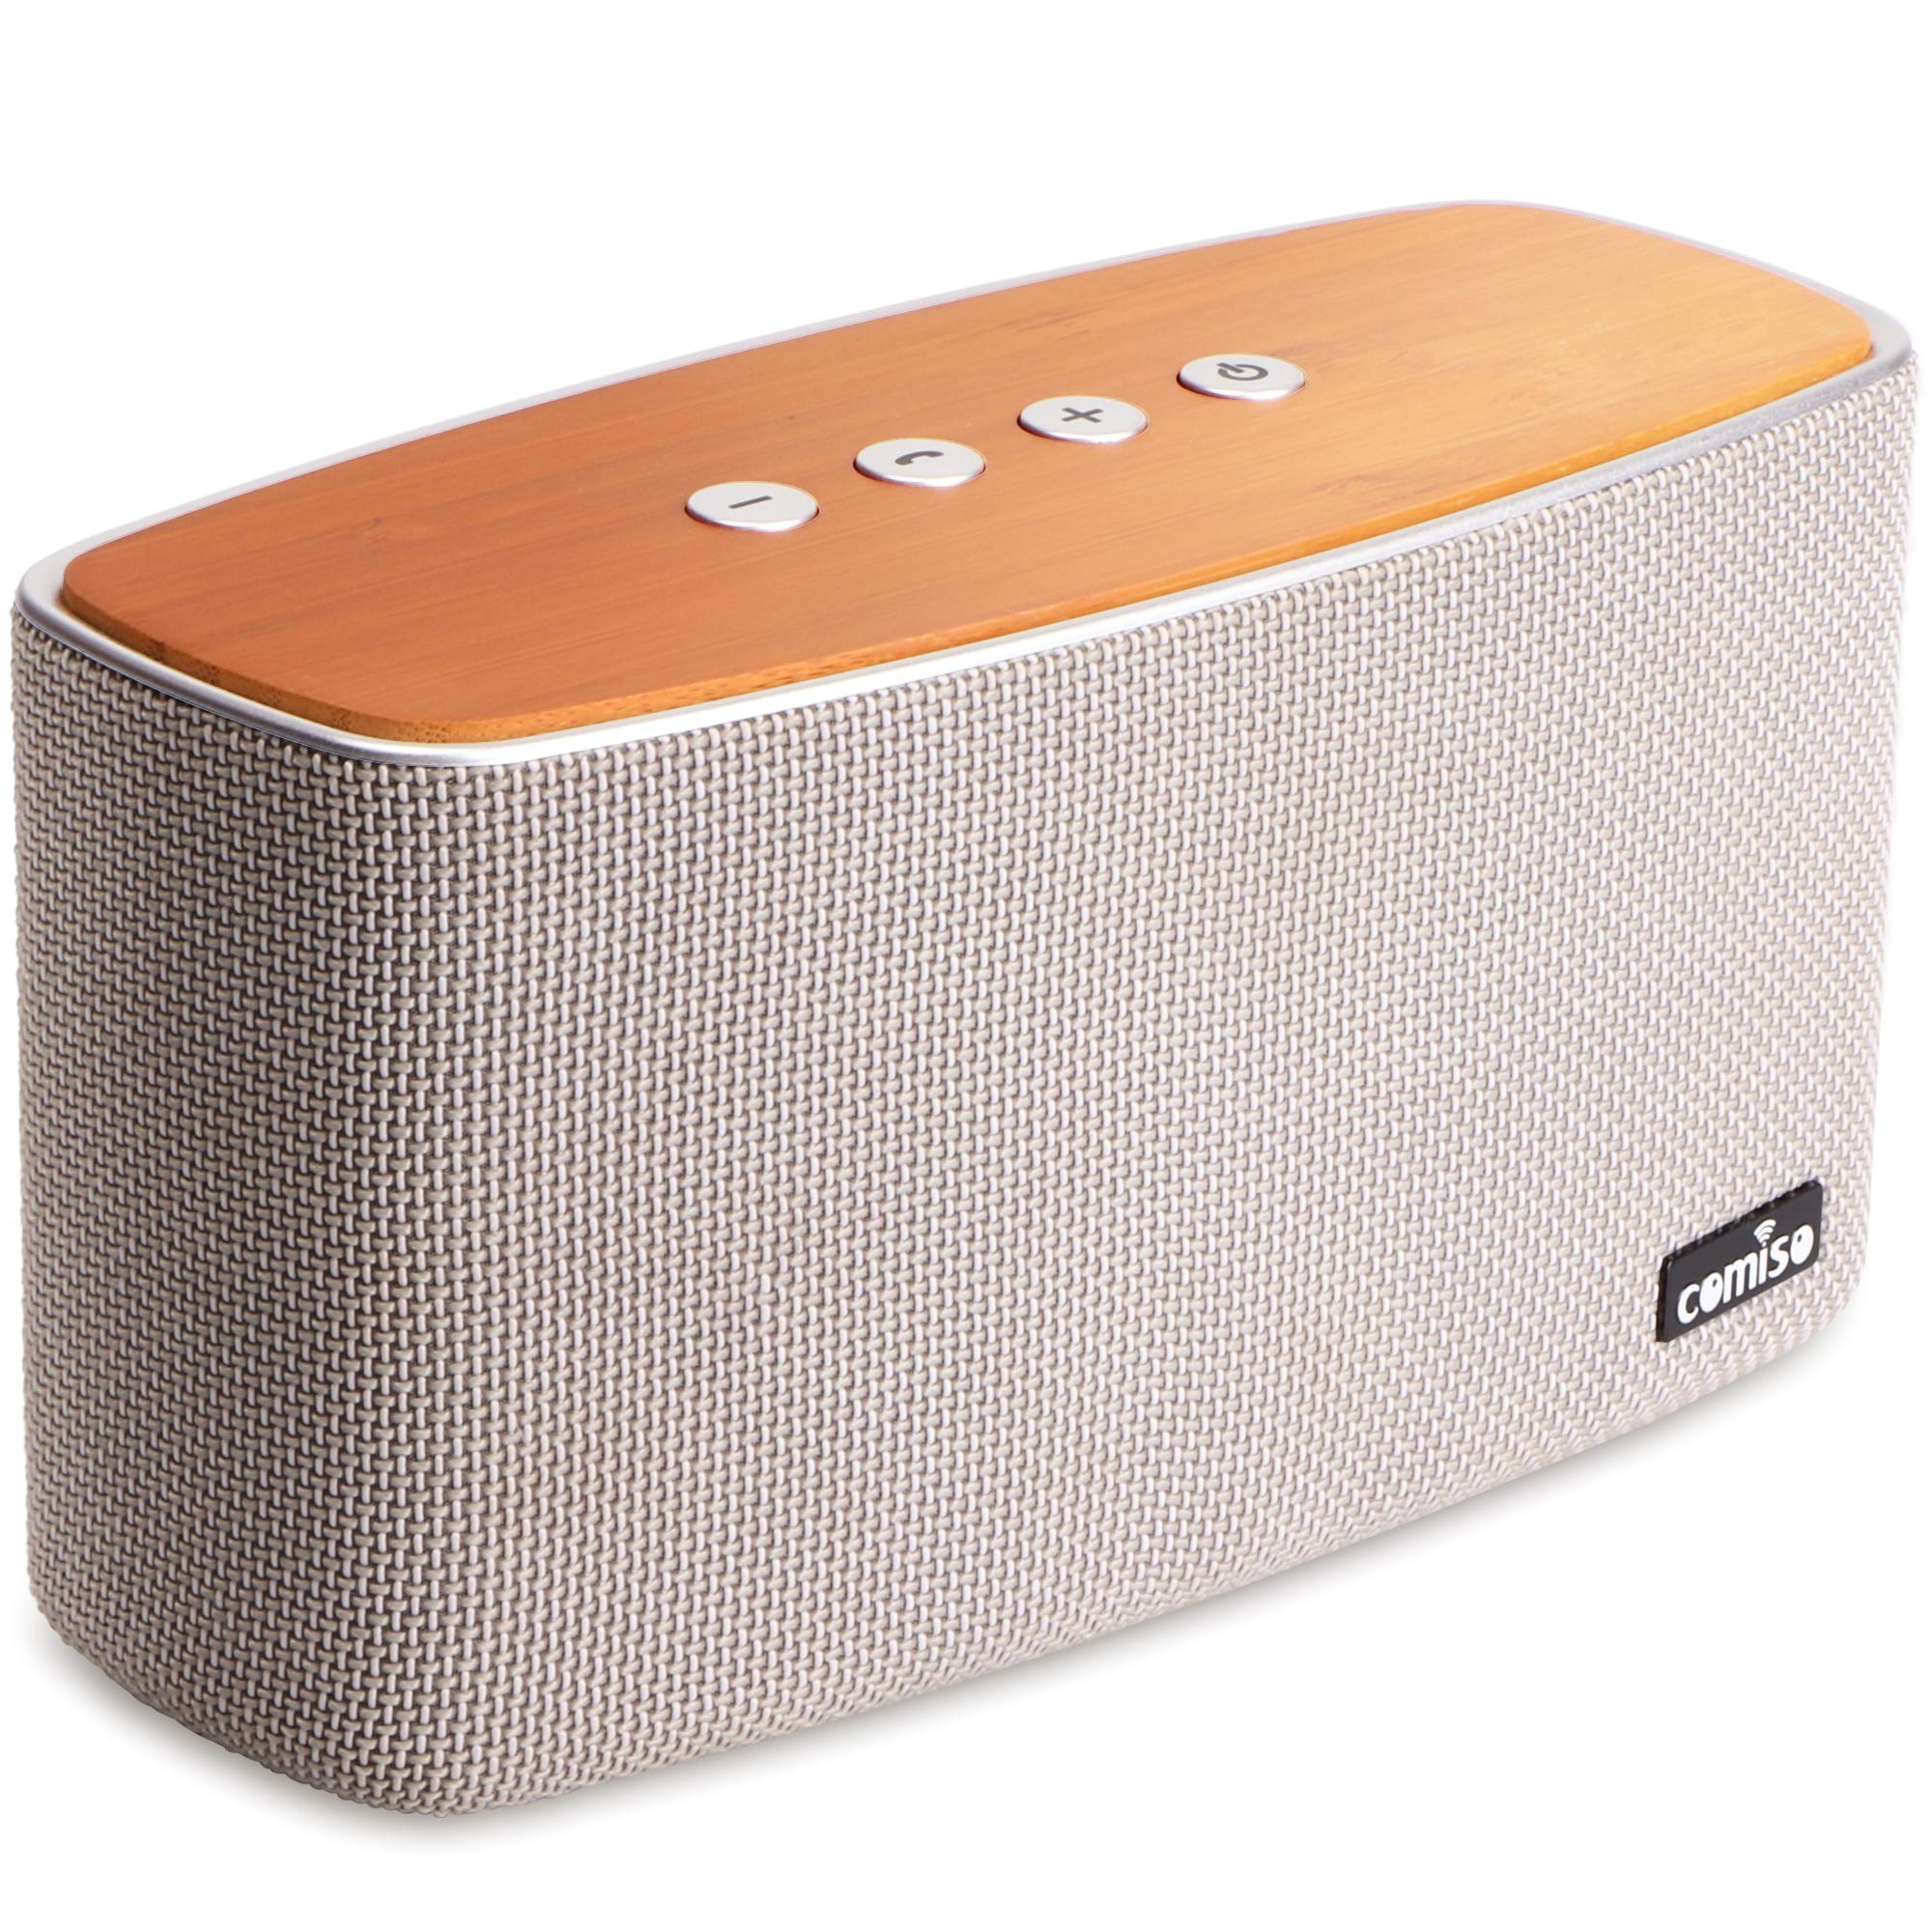 COMISO NatureAudio 30W Bluetooth Speakers, Loud Bamboo Wood Home Audio Wireless Speaker Super Bass Stereo Sound, 66 ft Bluetooth Range, Built-in Mic Home, Outdoors Party Subwoofer (Grey) by COMISO